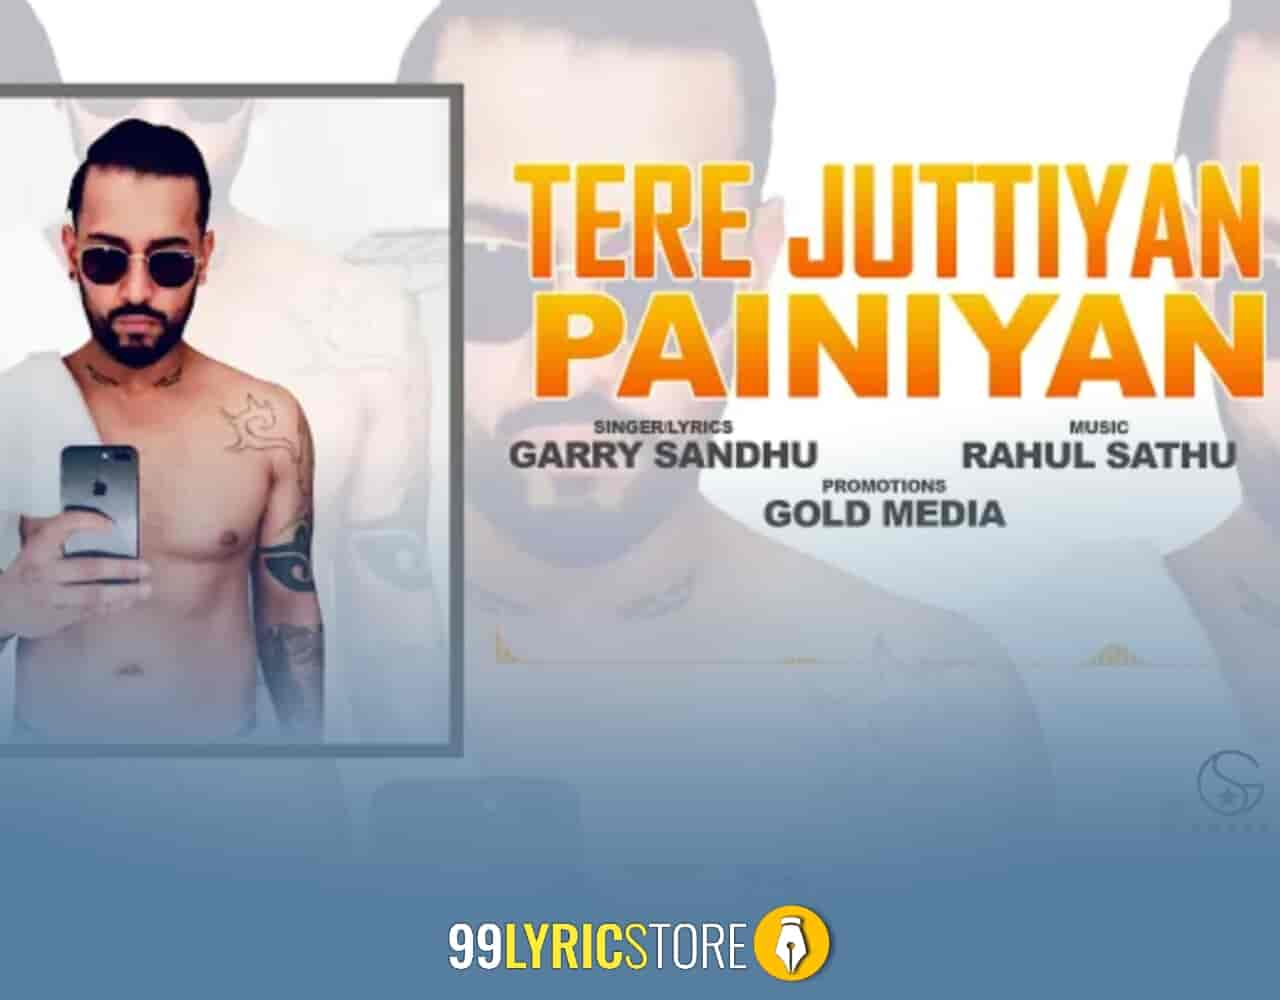 Tere Juttiyan Painiyan punjabi song Sung by Garry Sandhu